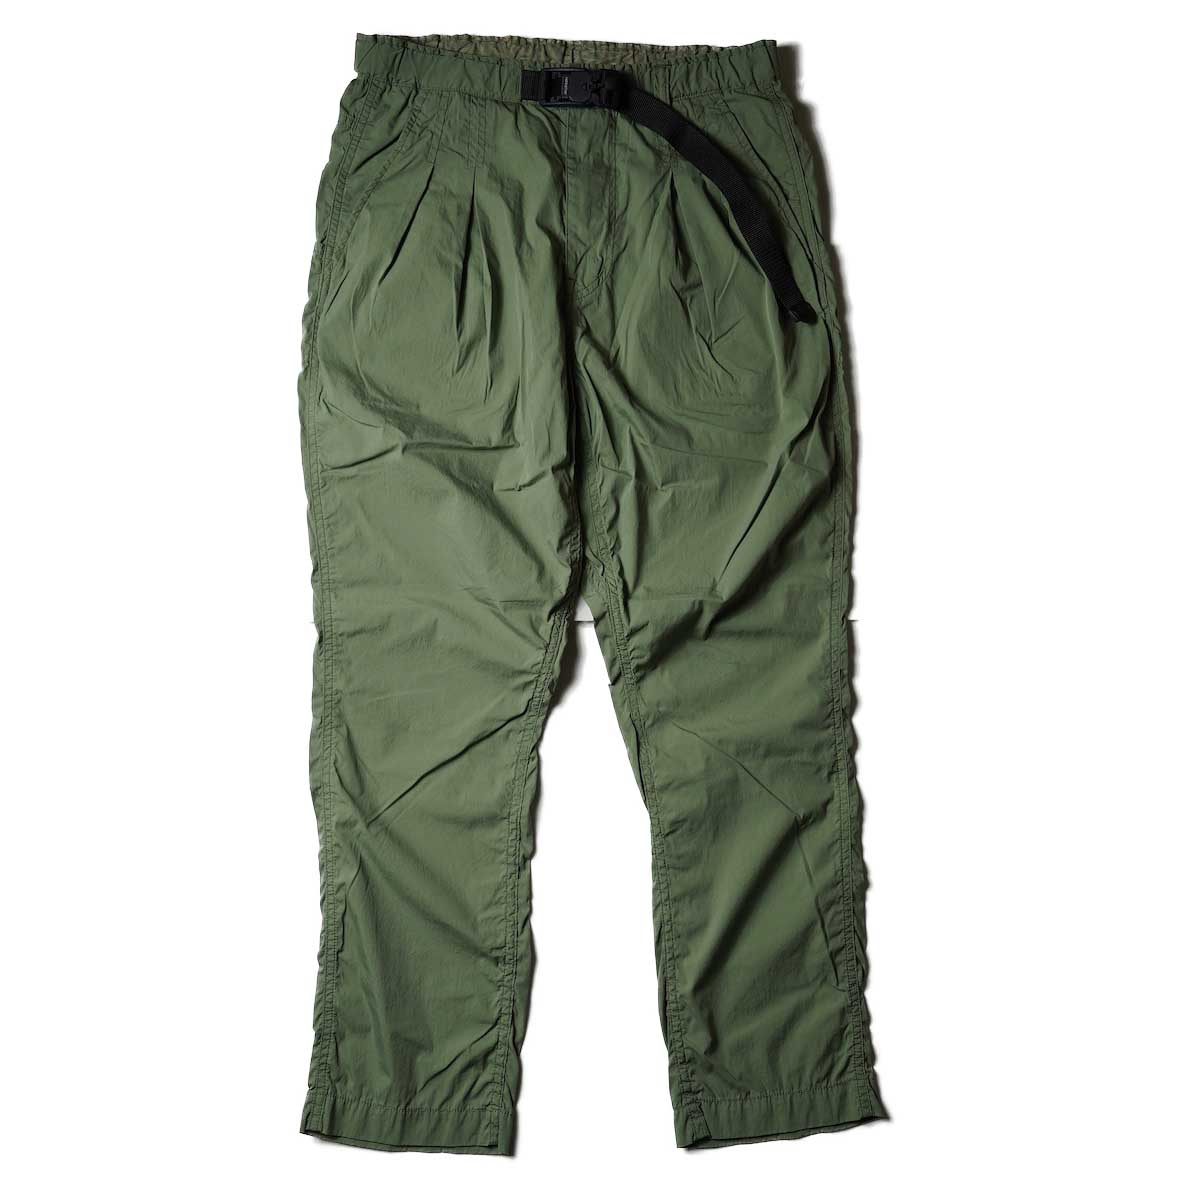 nonnative / ALPINIST EASY PANTS C/N TYPEWRITER WITH FIDLOCK® BUCKLE (Olive)正面